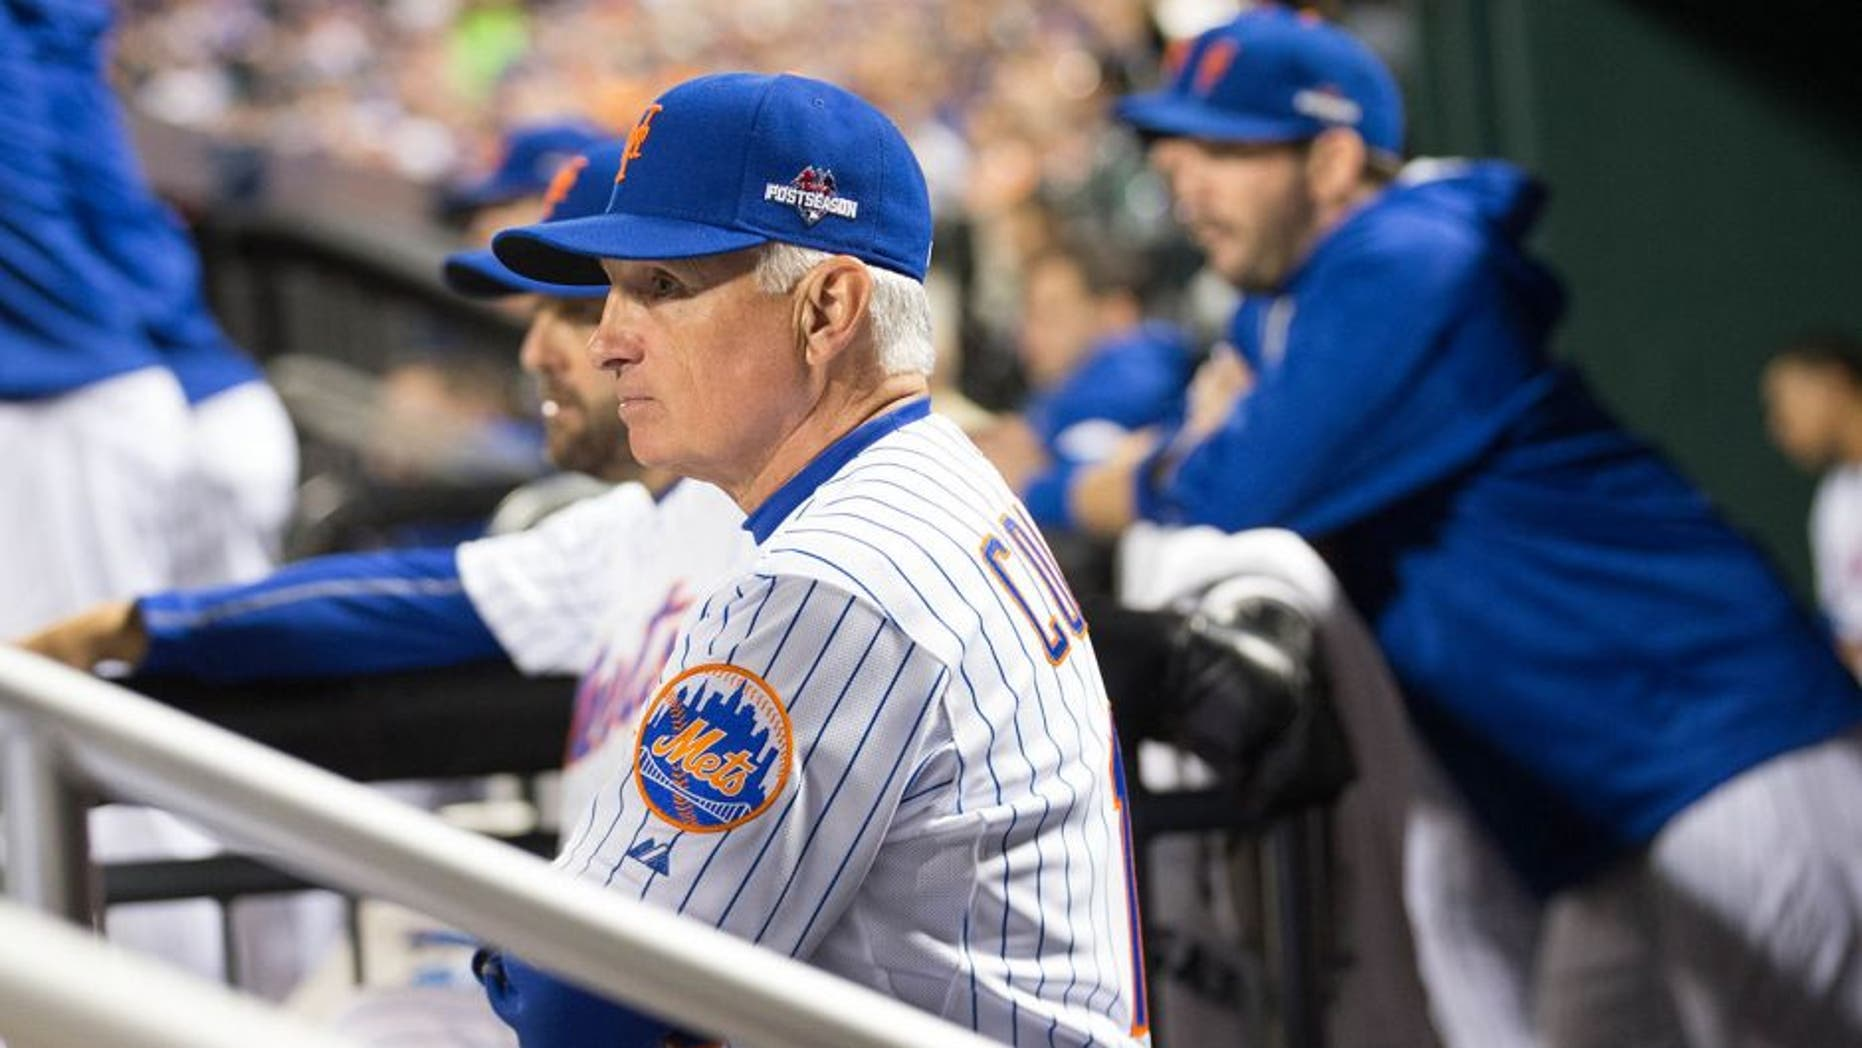 NEW YORK, NY - OCTOBER 13: Terry Collins #10 of the New York Mets looks on from the dugout during Game 4 of the NLDS against the Los Angeles Dodgers at Citi Field on Tuesday, October 13, 2015 in the Queens borough of New York City. (Photo by Rob Tringali/MLB Photos via Getty Images) *** Local Caption)